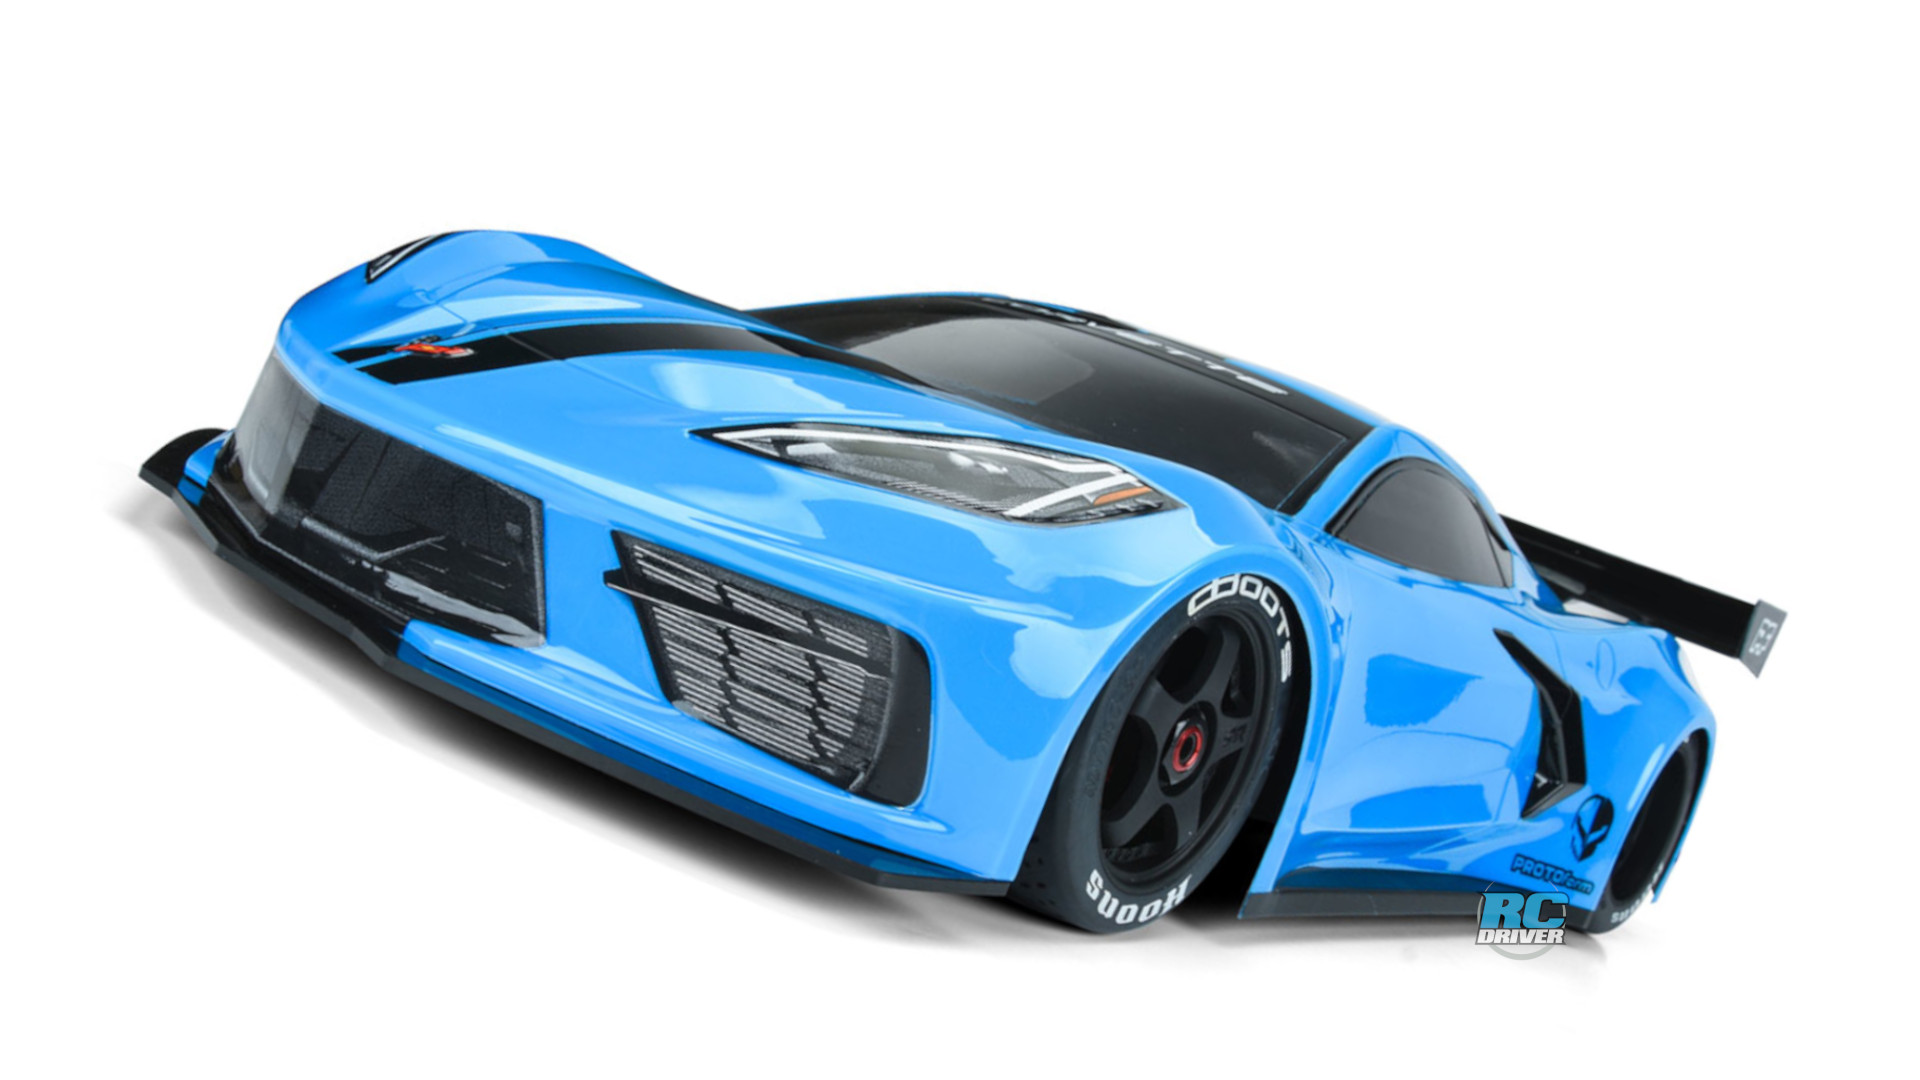 PROTOform 1/7-scale Chevrolet Corvette C8 Clear Body